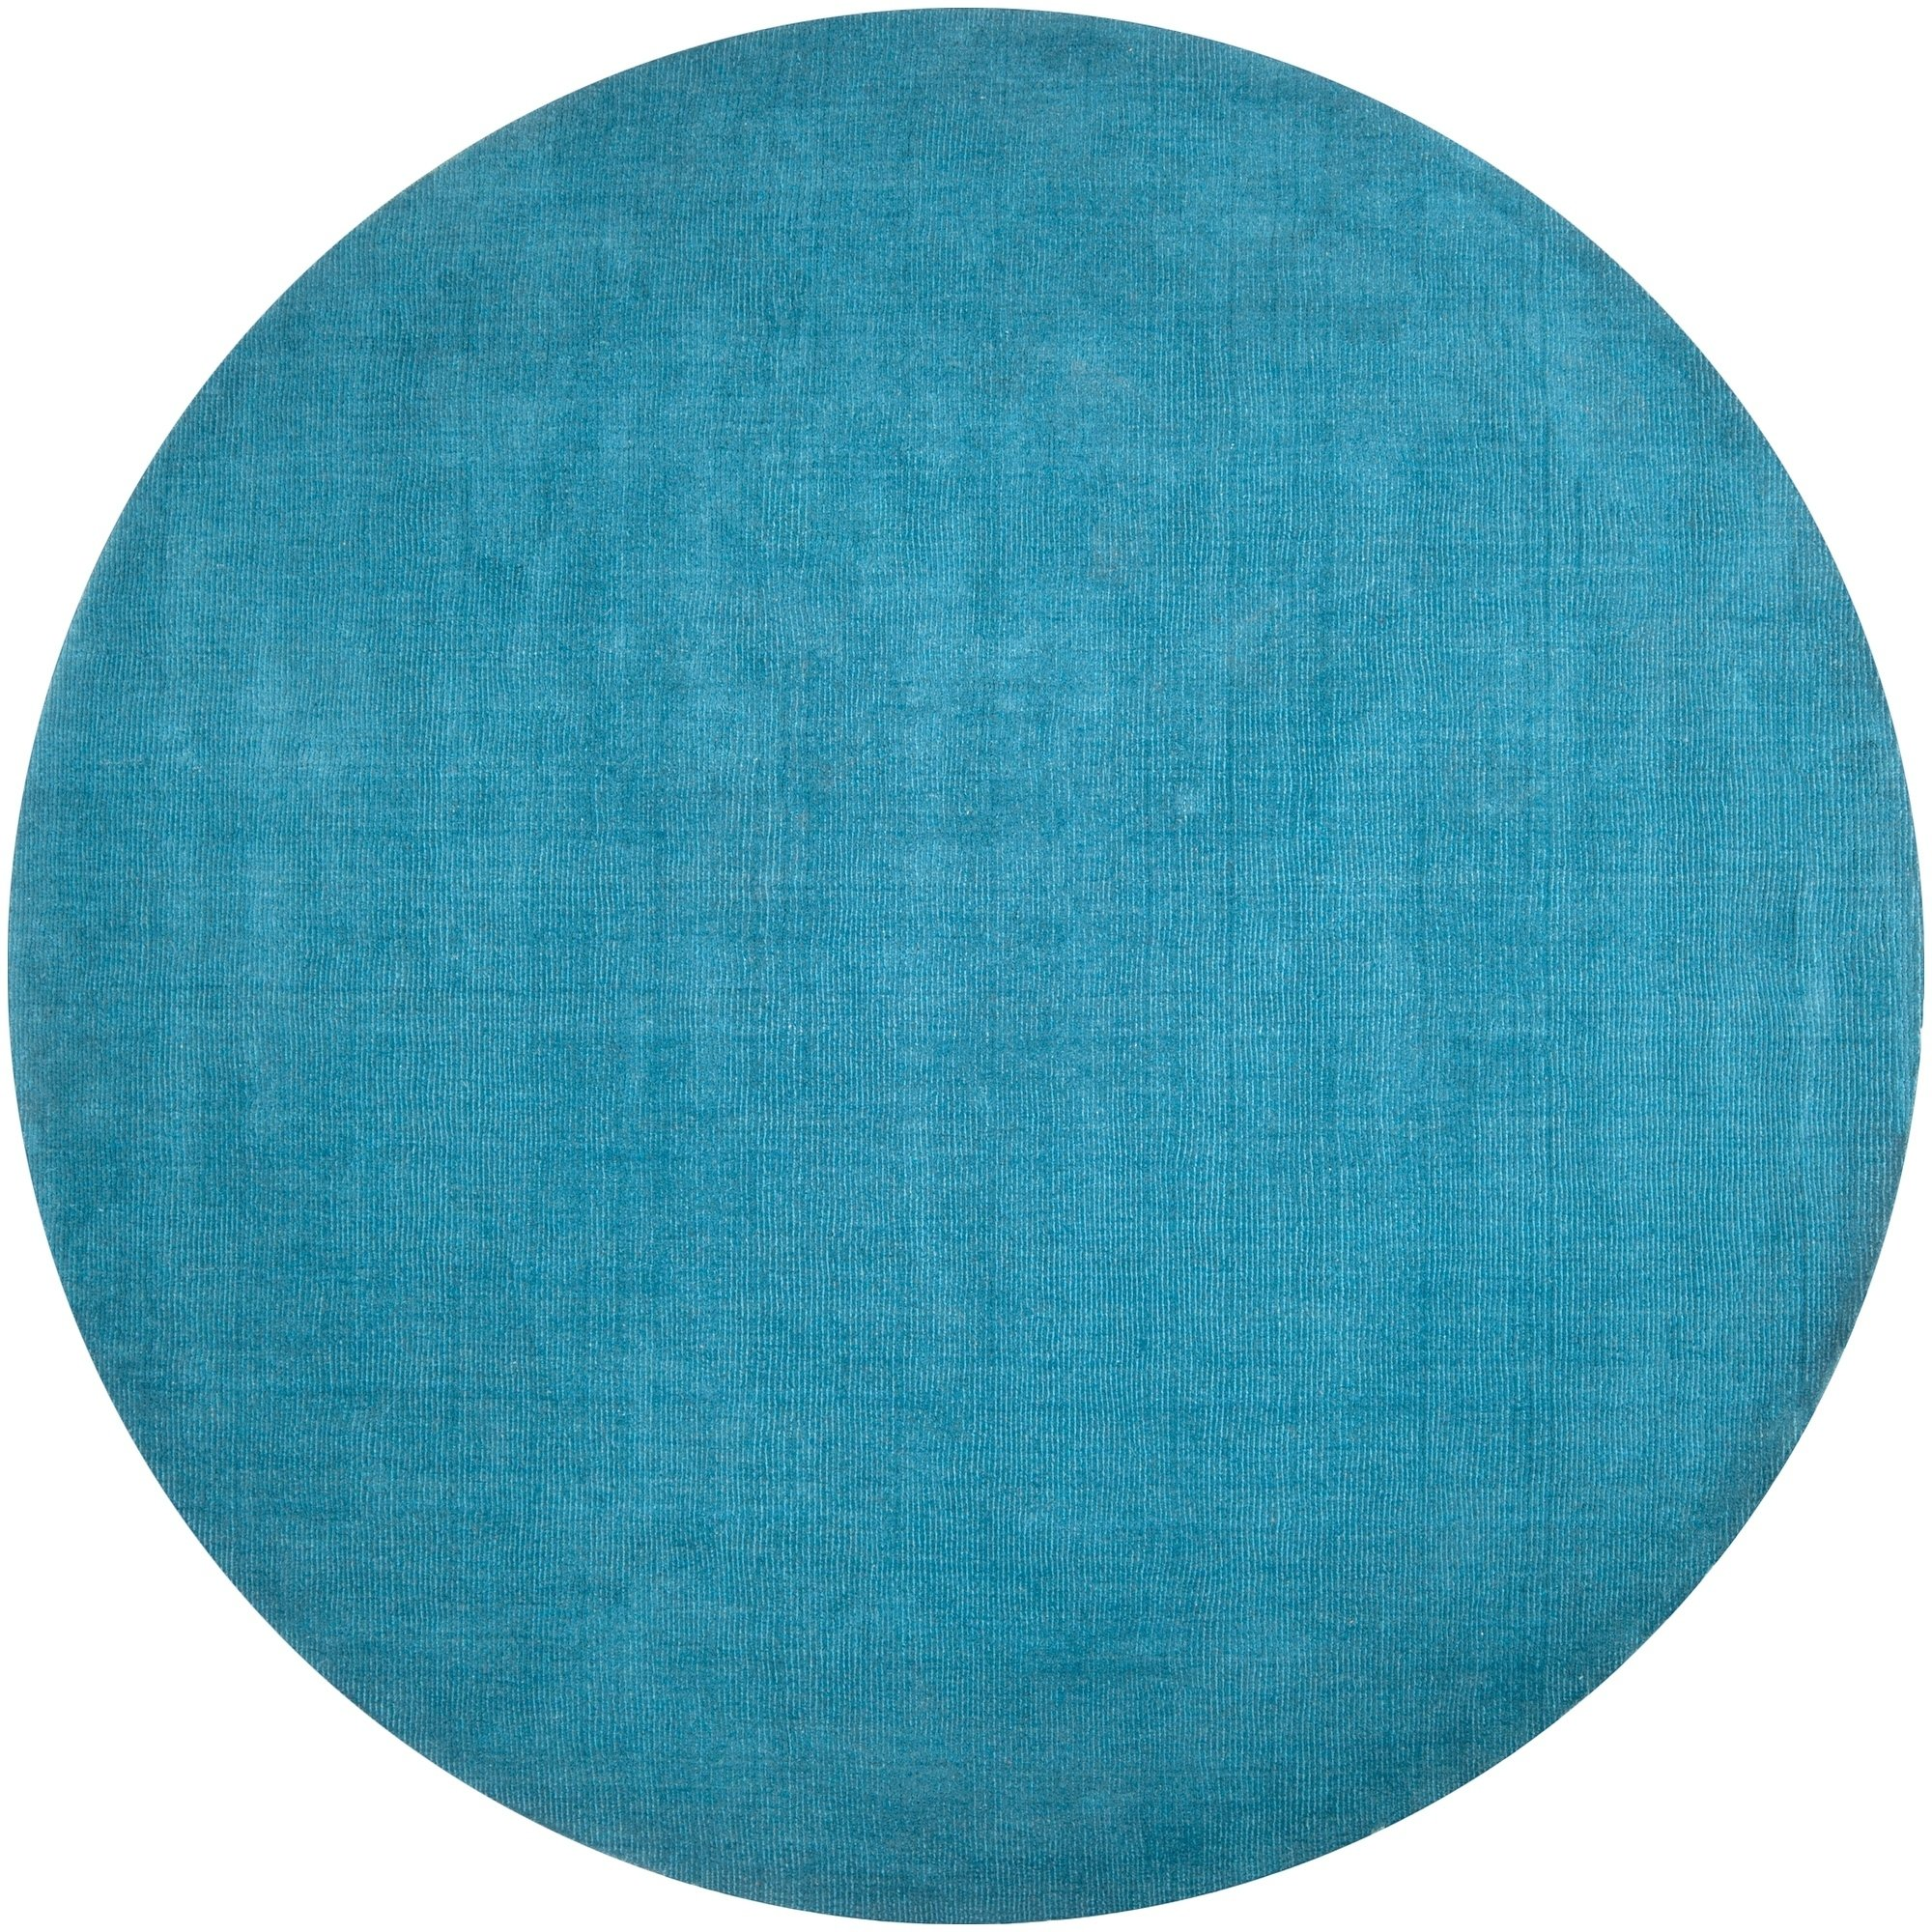 Hand Crafted Teal Blue Solid Casual Ridges Wool Area Rug 9 9 Round 9 9 Round Aqua Solid Area Rugs Wool Area Rugs